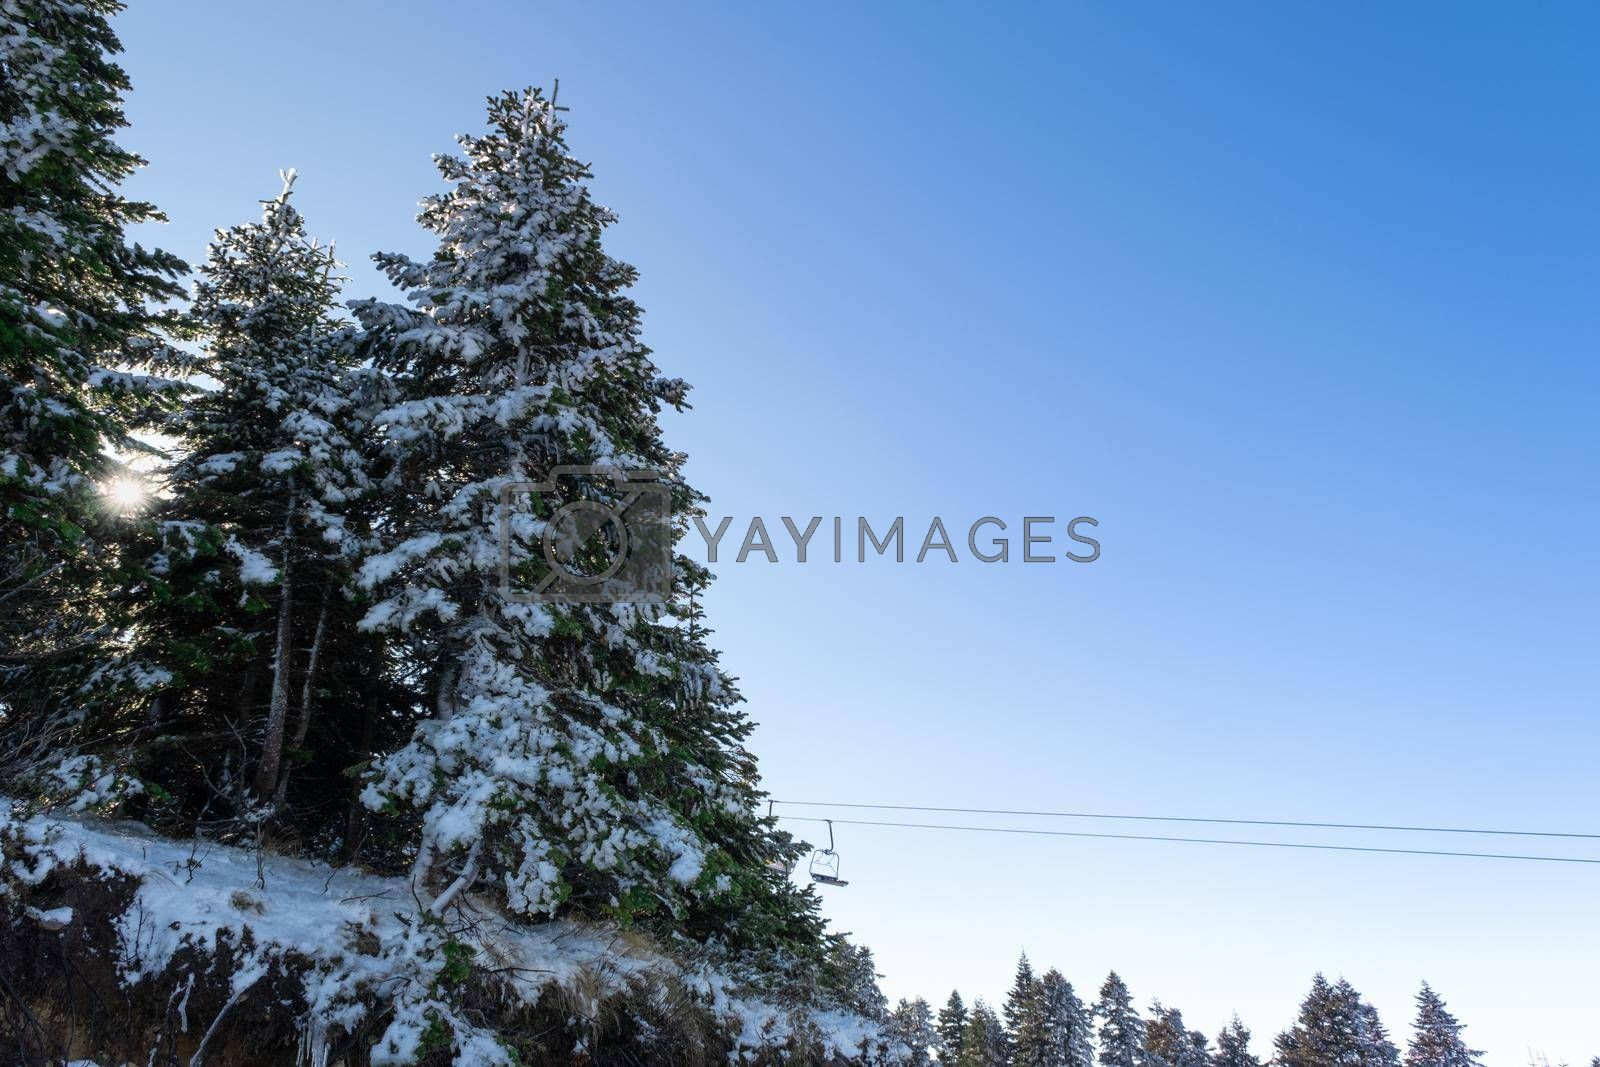 It depicts a landscape in forest in Christmas time in Winter and snow falling on pine trees